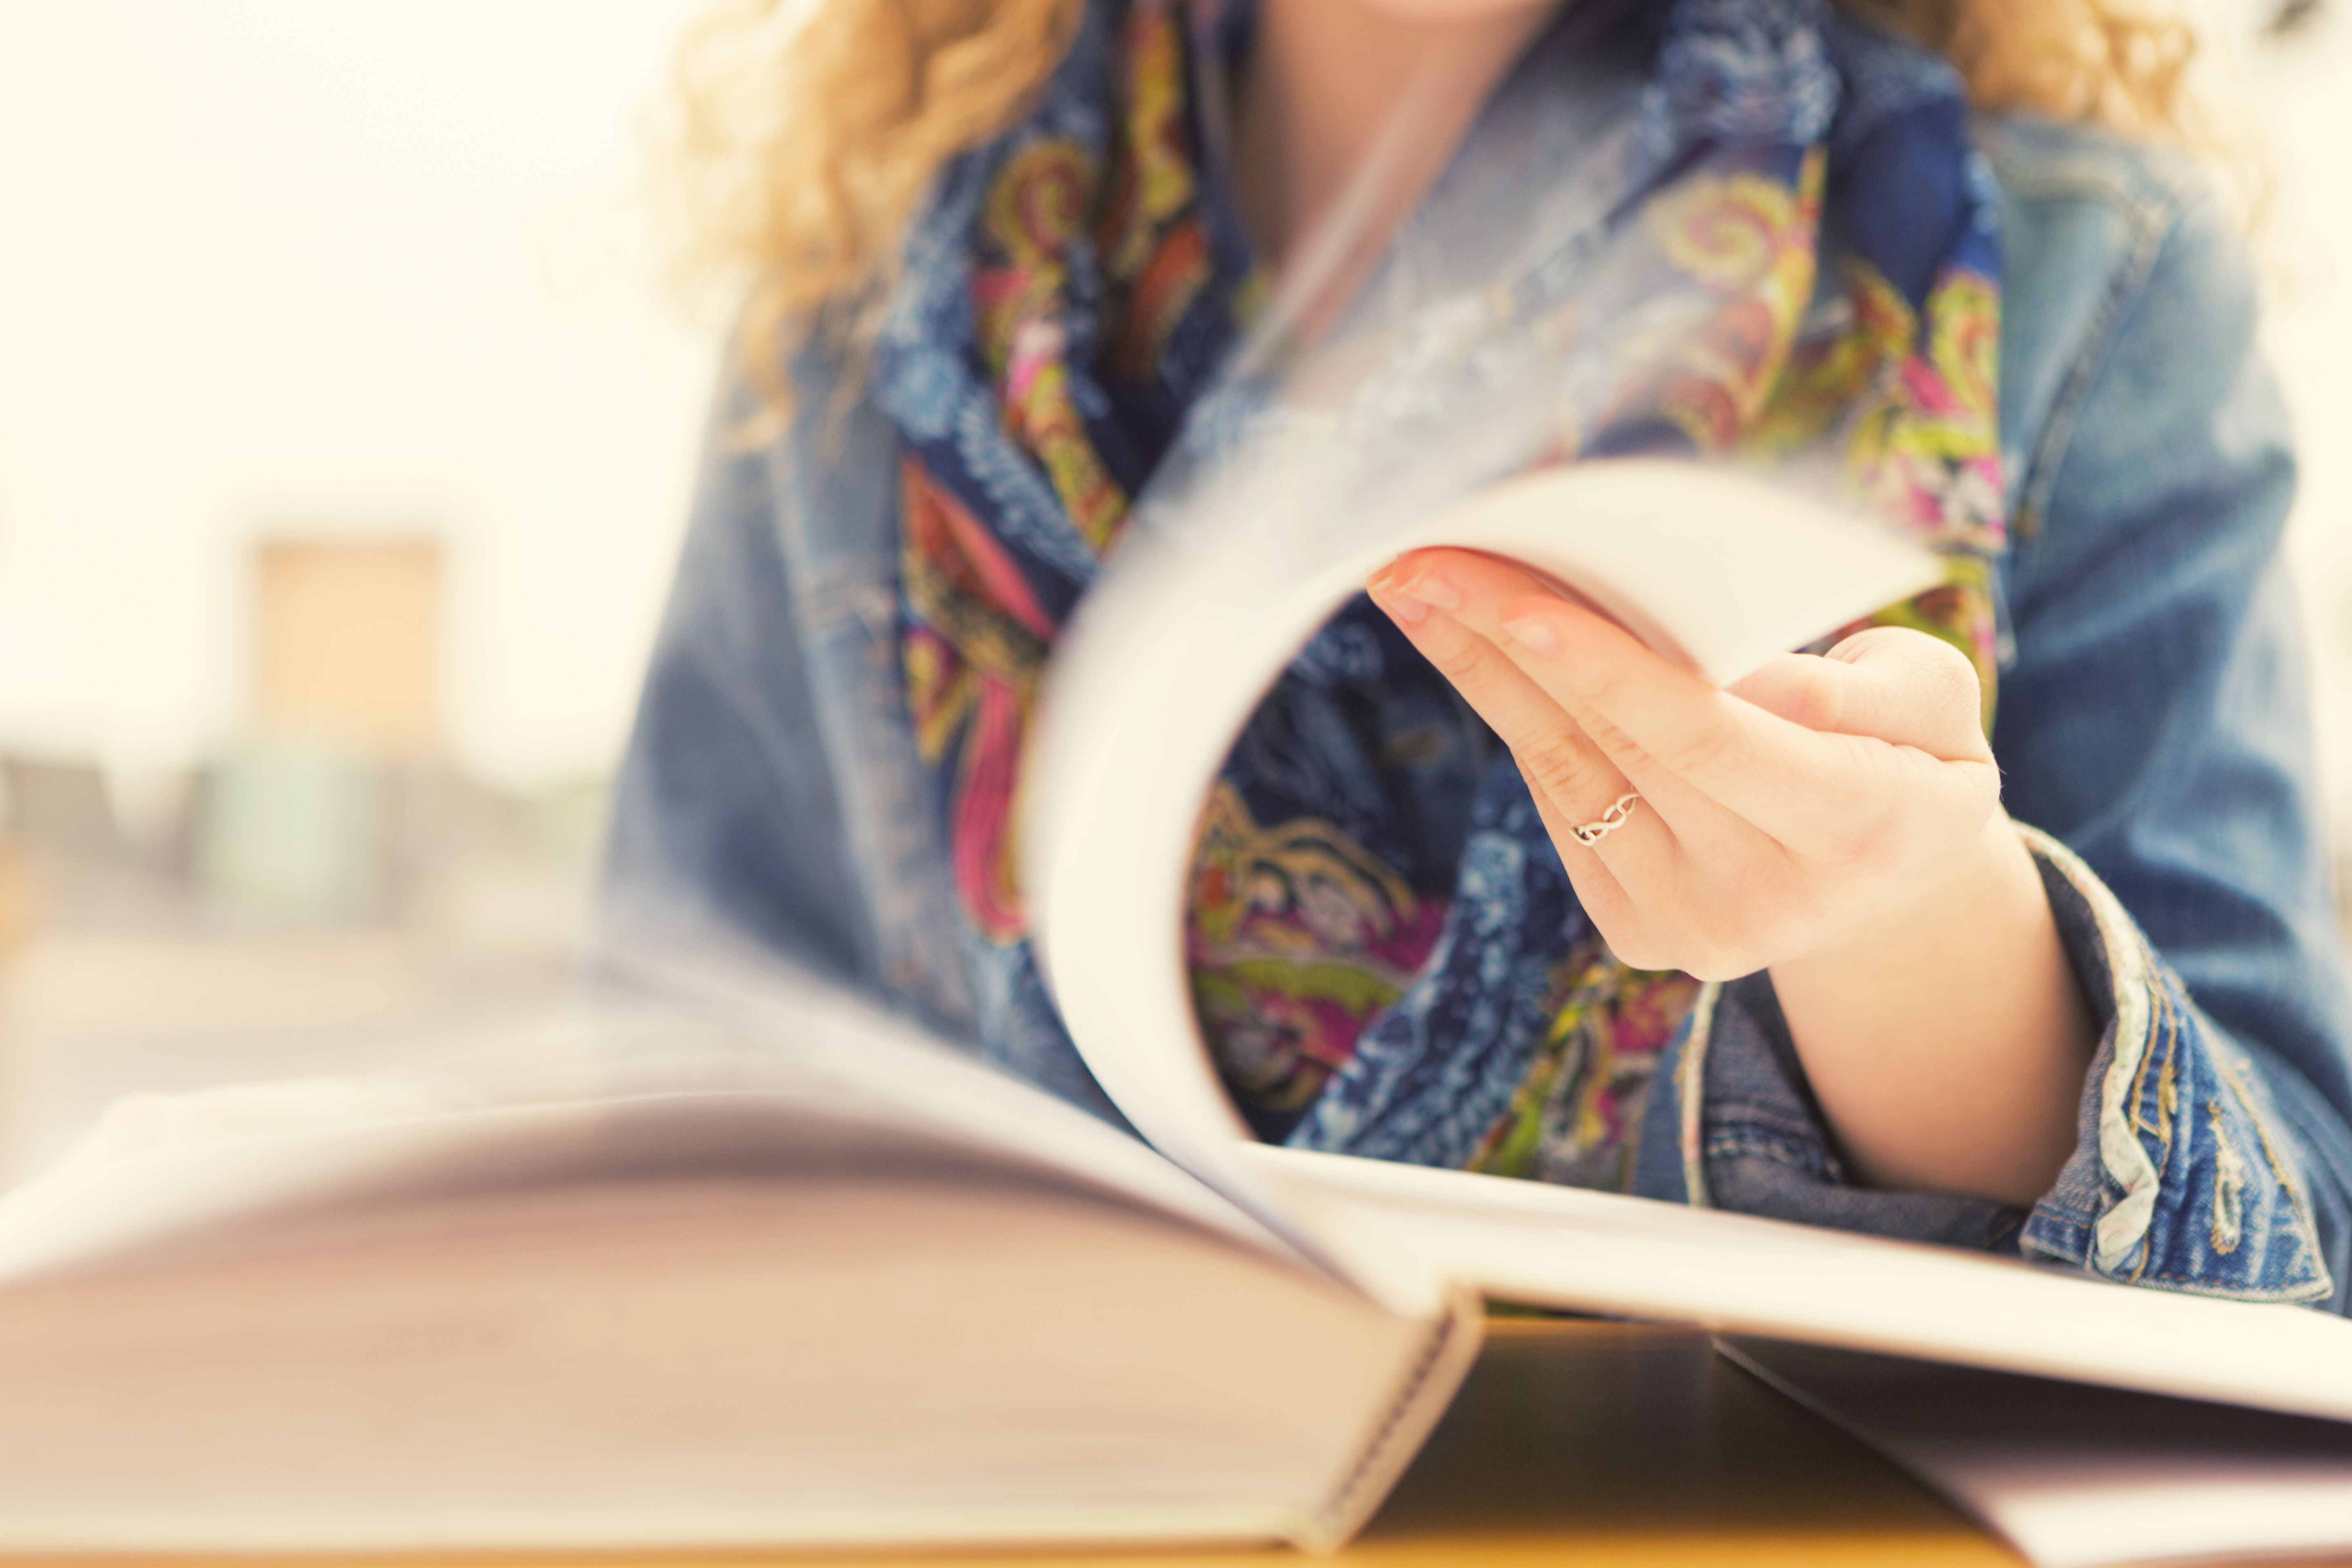 Student flipping through book; motion of turning pages